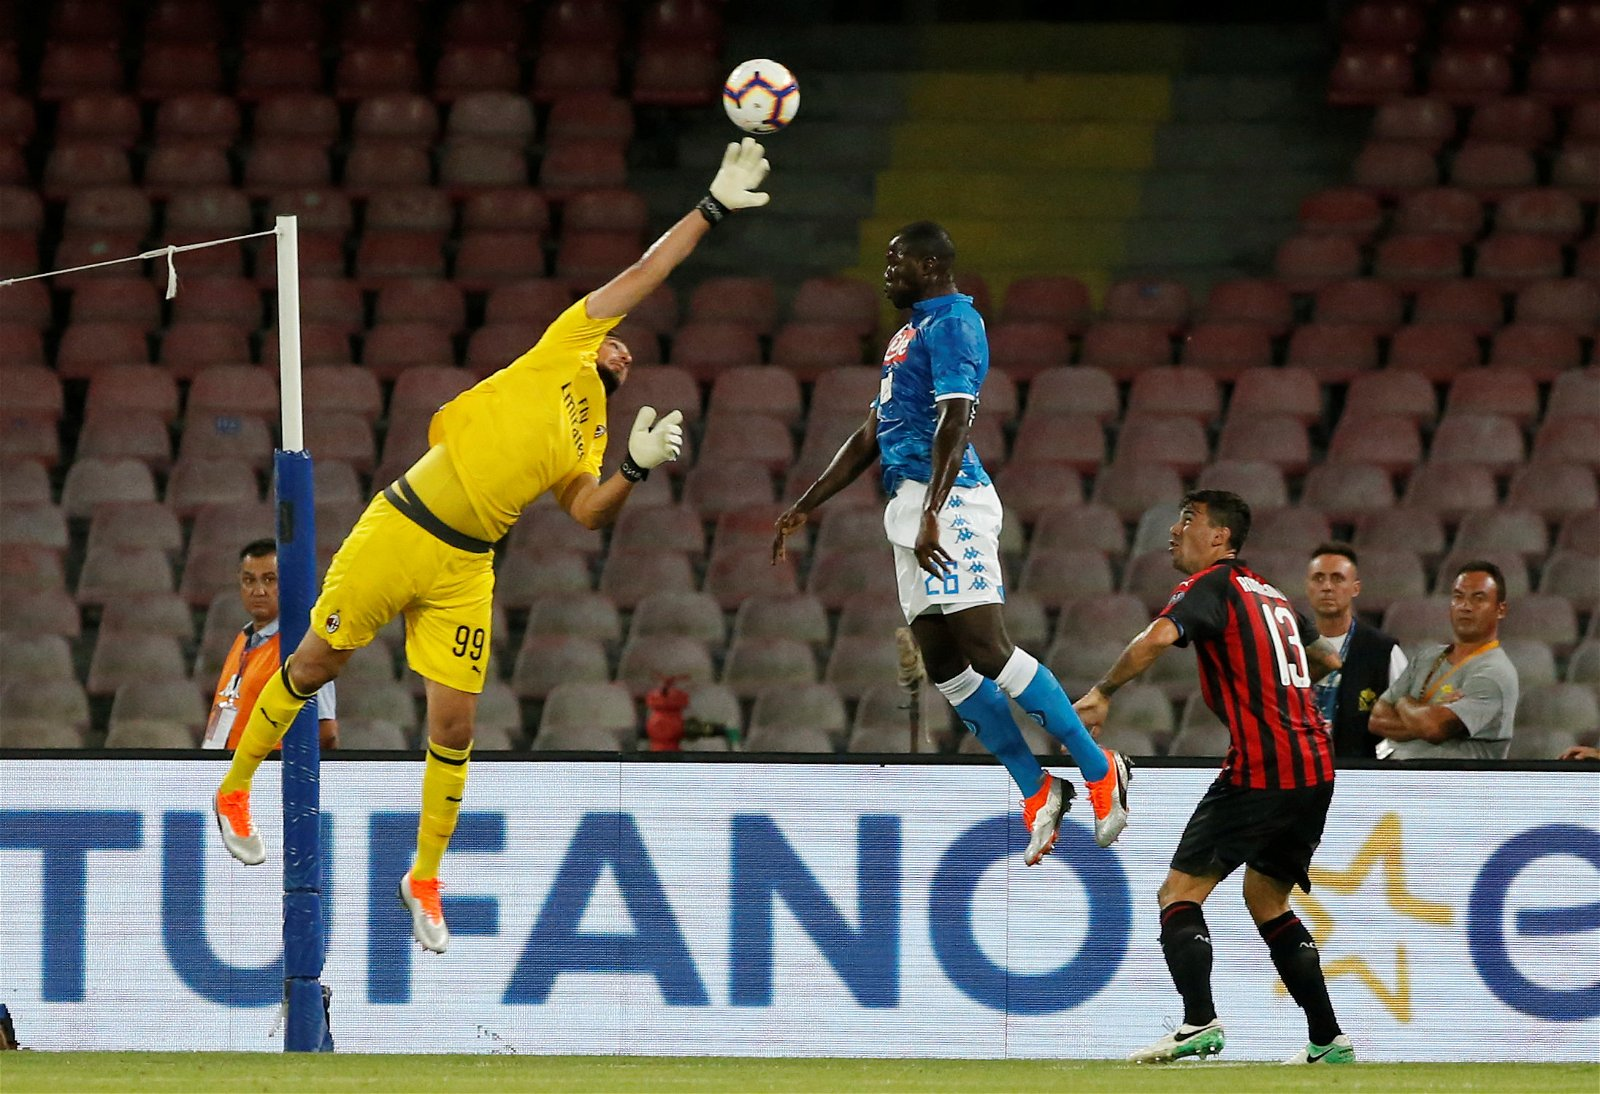 AC Milan goalkeeper Gianluigi Donnarumma punches the ball away with Napolis Kalidou Koulibaly lurking - [Images] - The photos that indicate why Donnarumma would be a big Bernd Leno upgrade